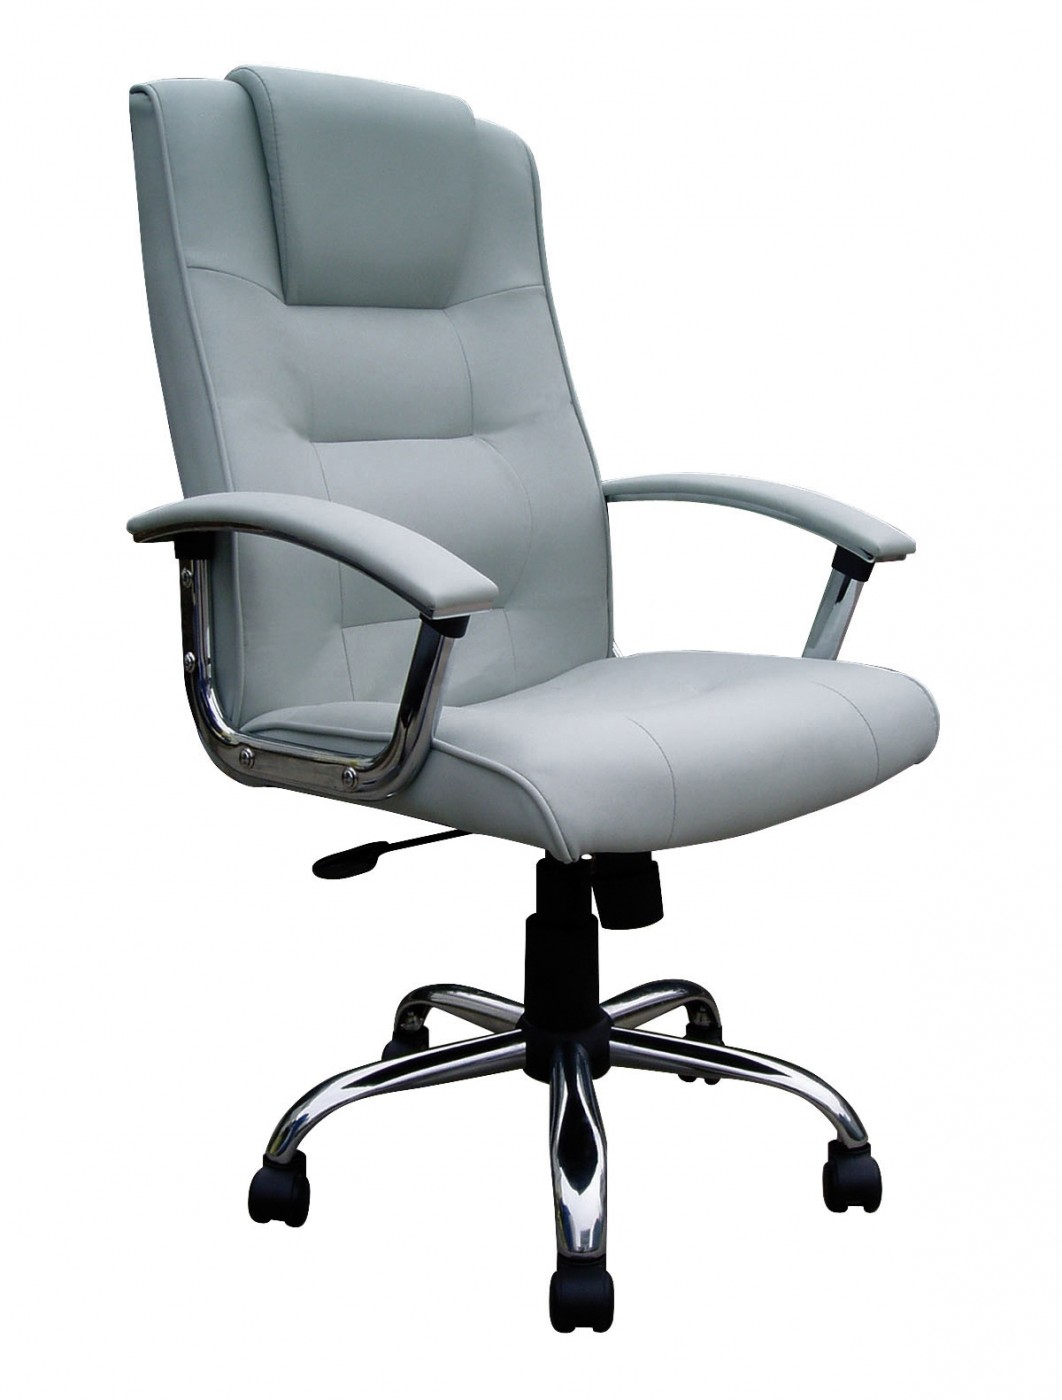 Westminster Executive Chair 2008ATG 121 Office Furniture